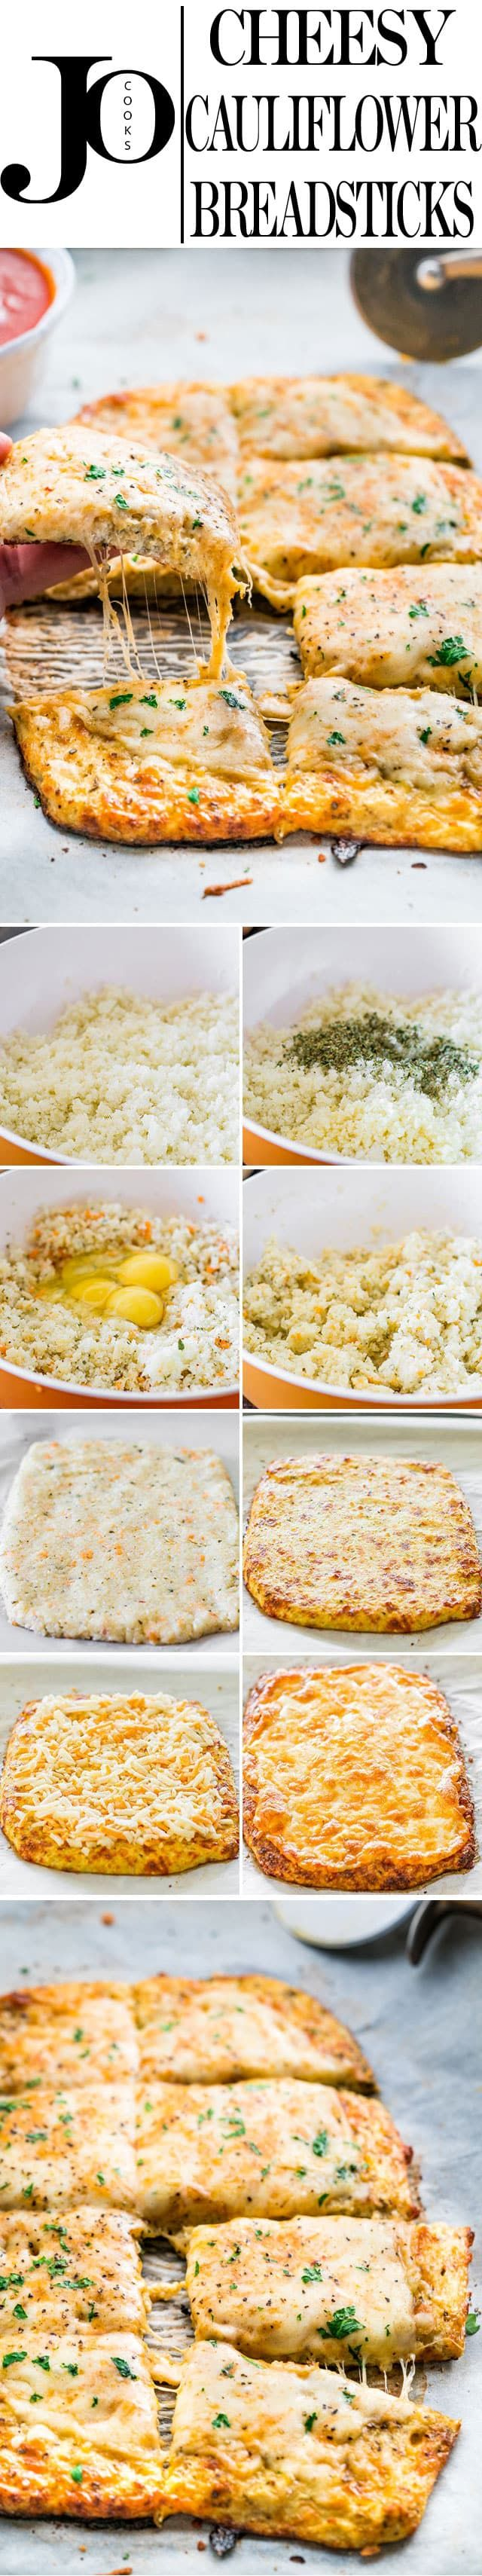 21 Filling Low Carb Recipes With No Meat Cauliflower Breadsticks